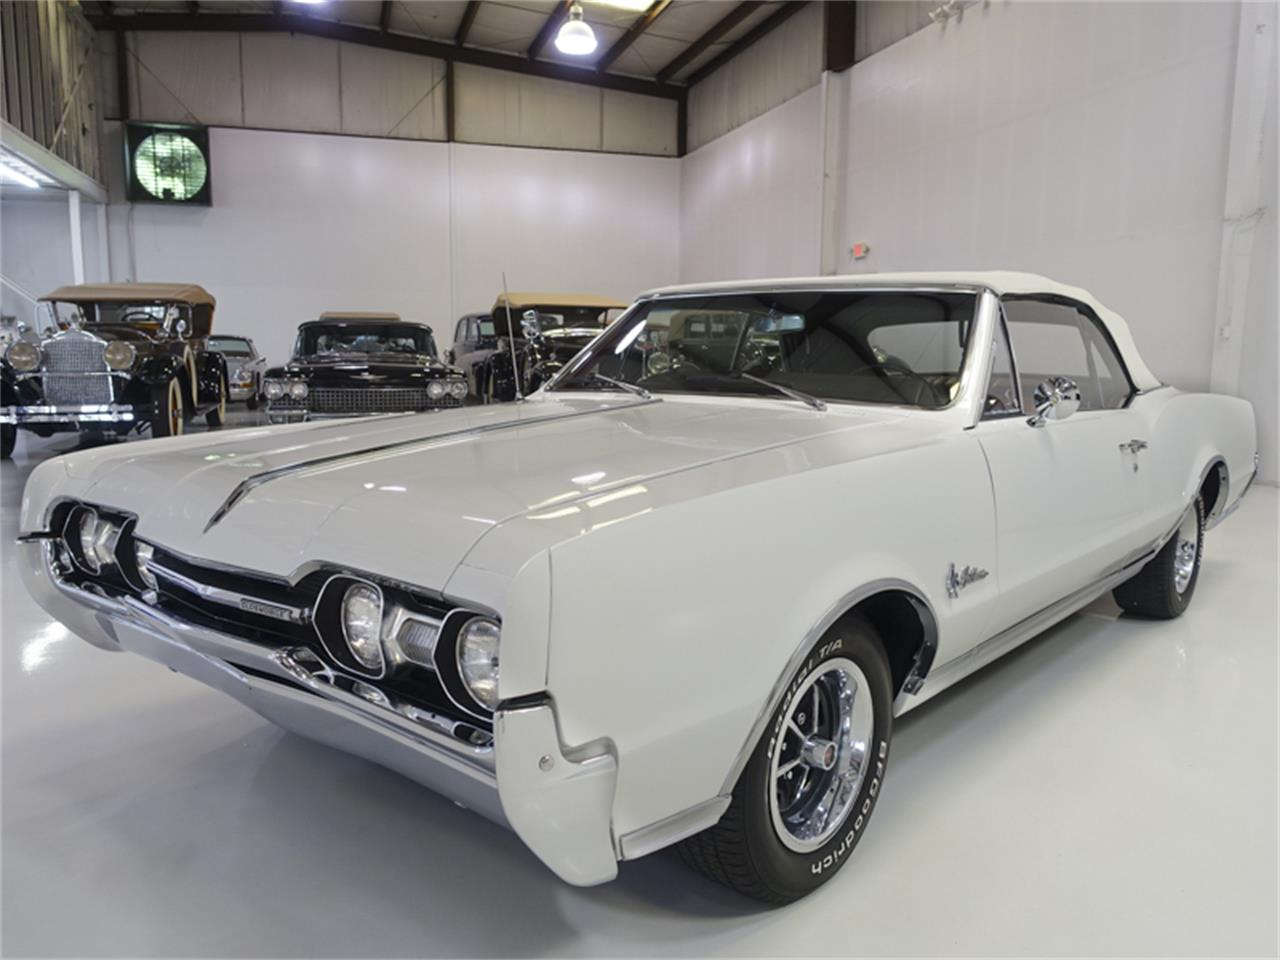 Large Picture of Classic 1967 Oldsmobile Cutlass Supreme Offered by Daniel Schmitt & Co. - QK0F